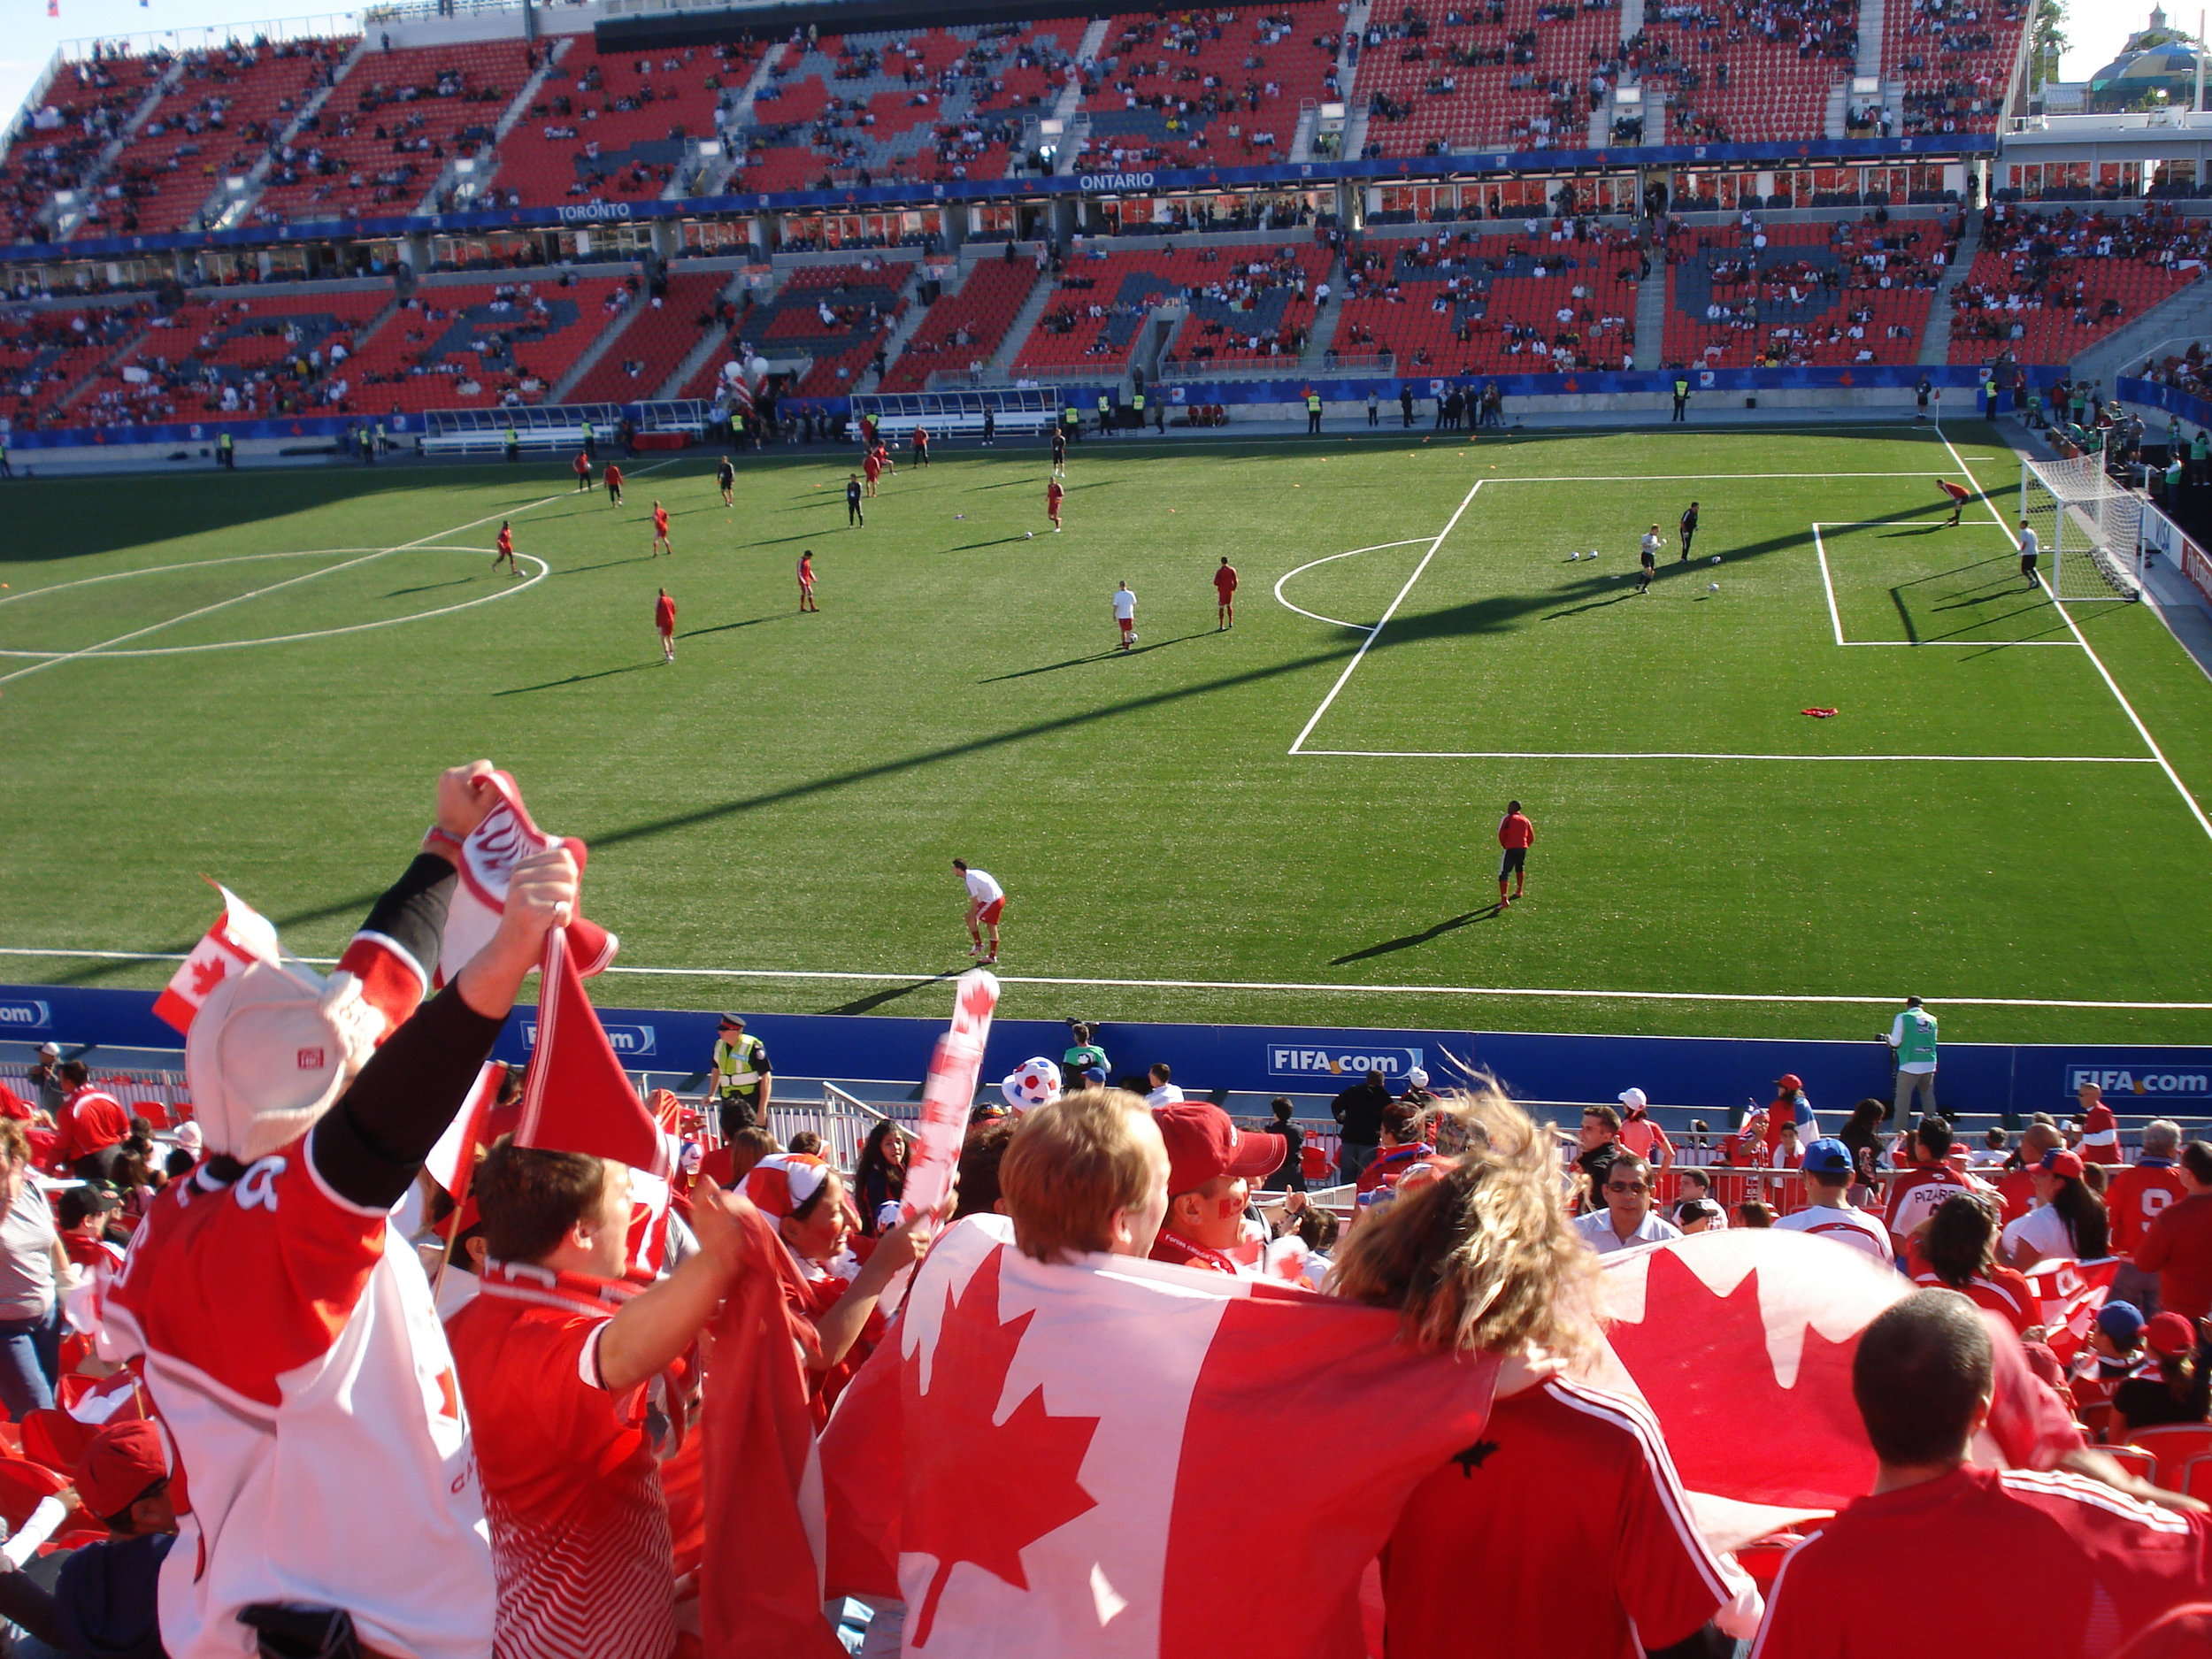 Canadian_supporters,_FIFA_U20_World_Cup_2007.jpg